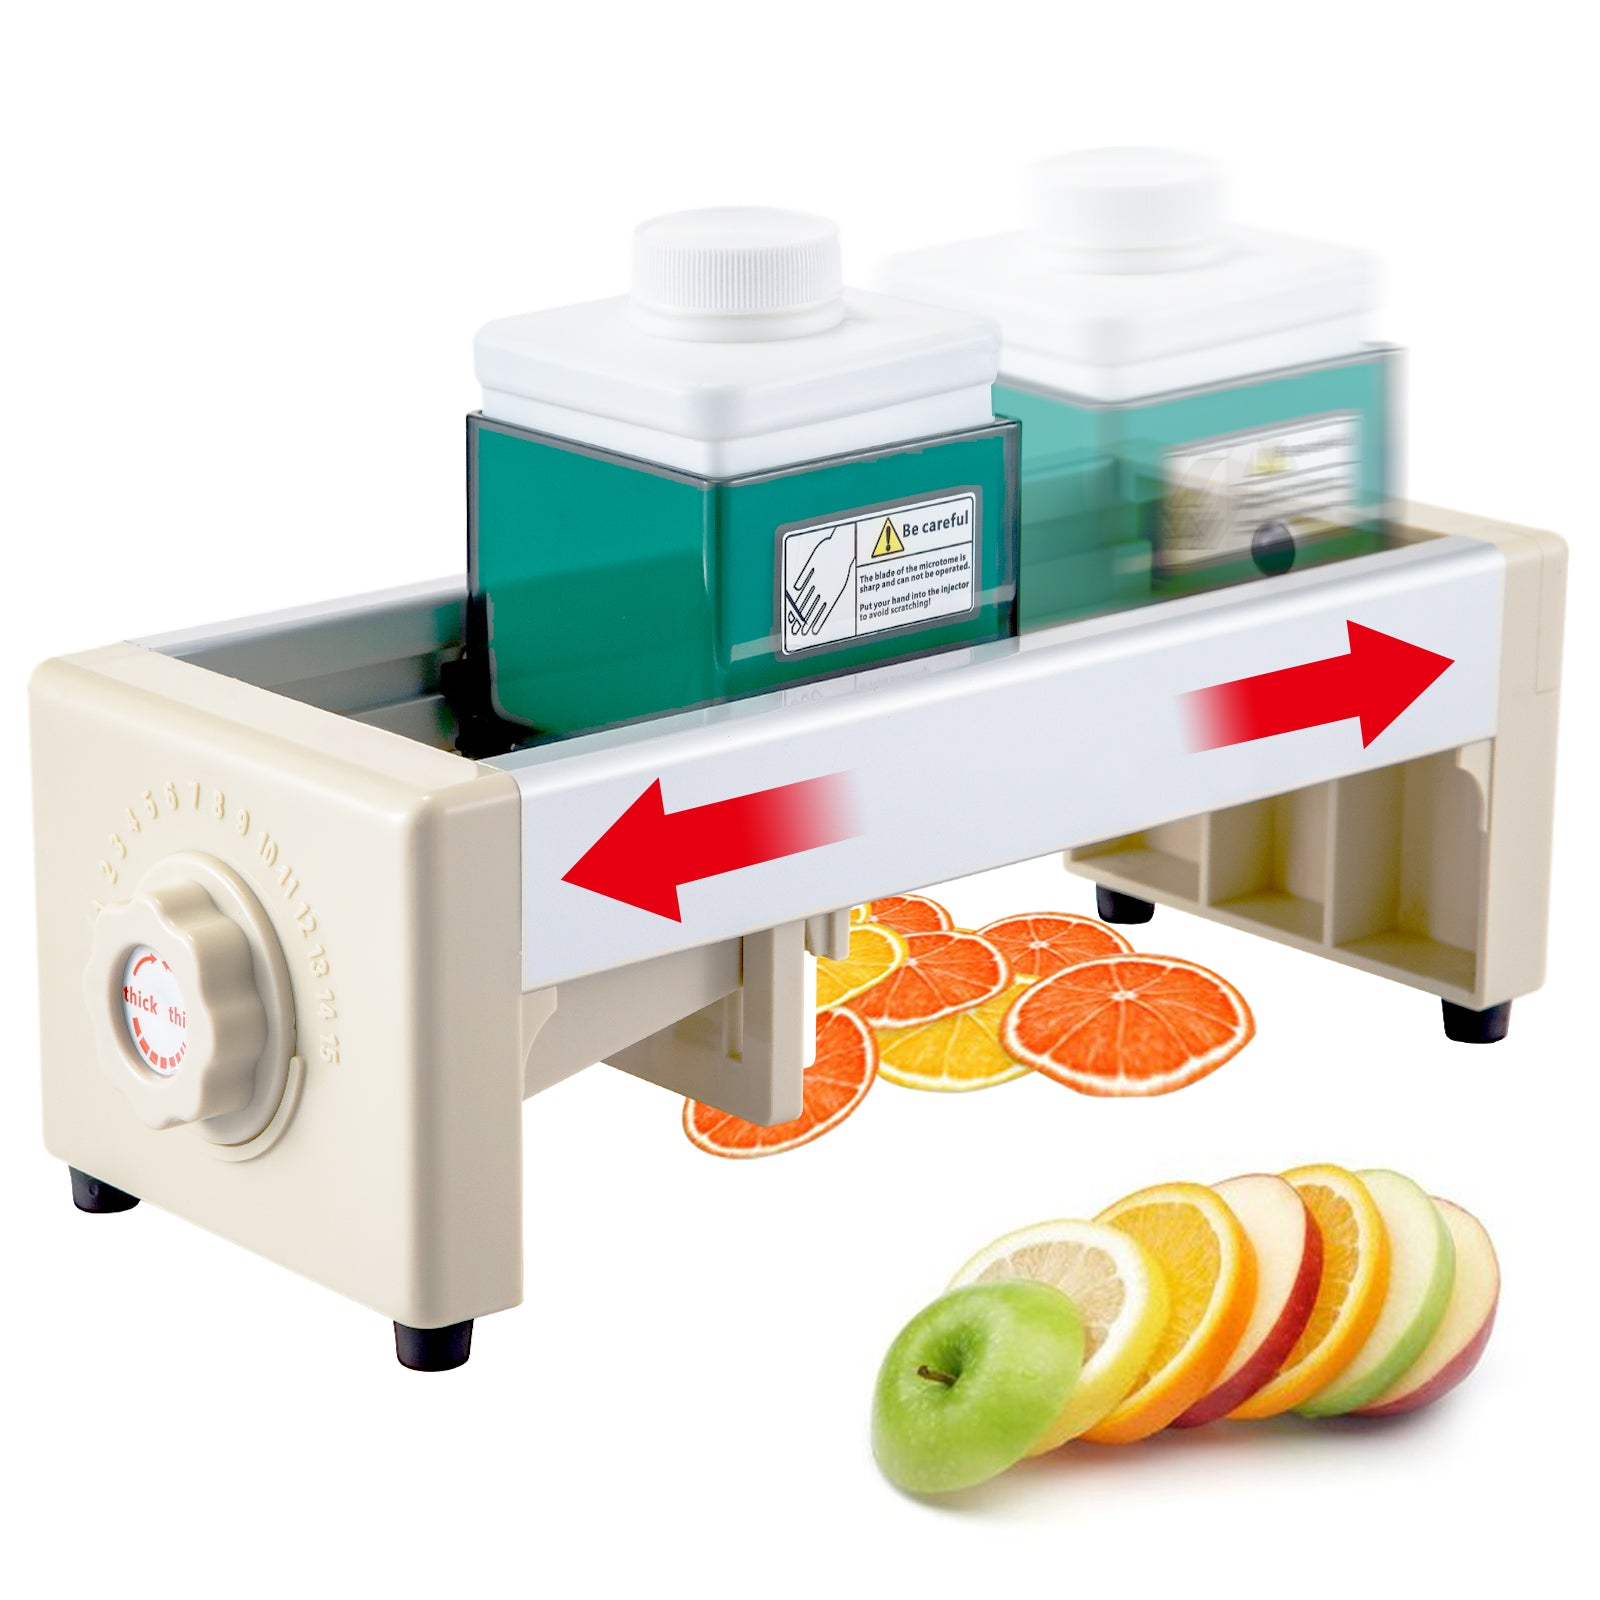 Commercial Fruit Vegetable Slicer Tomato Lemon Cutter Slicing Machine Home